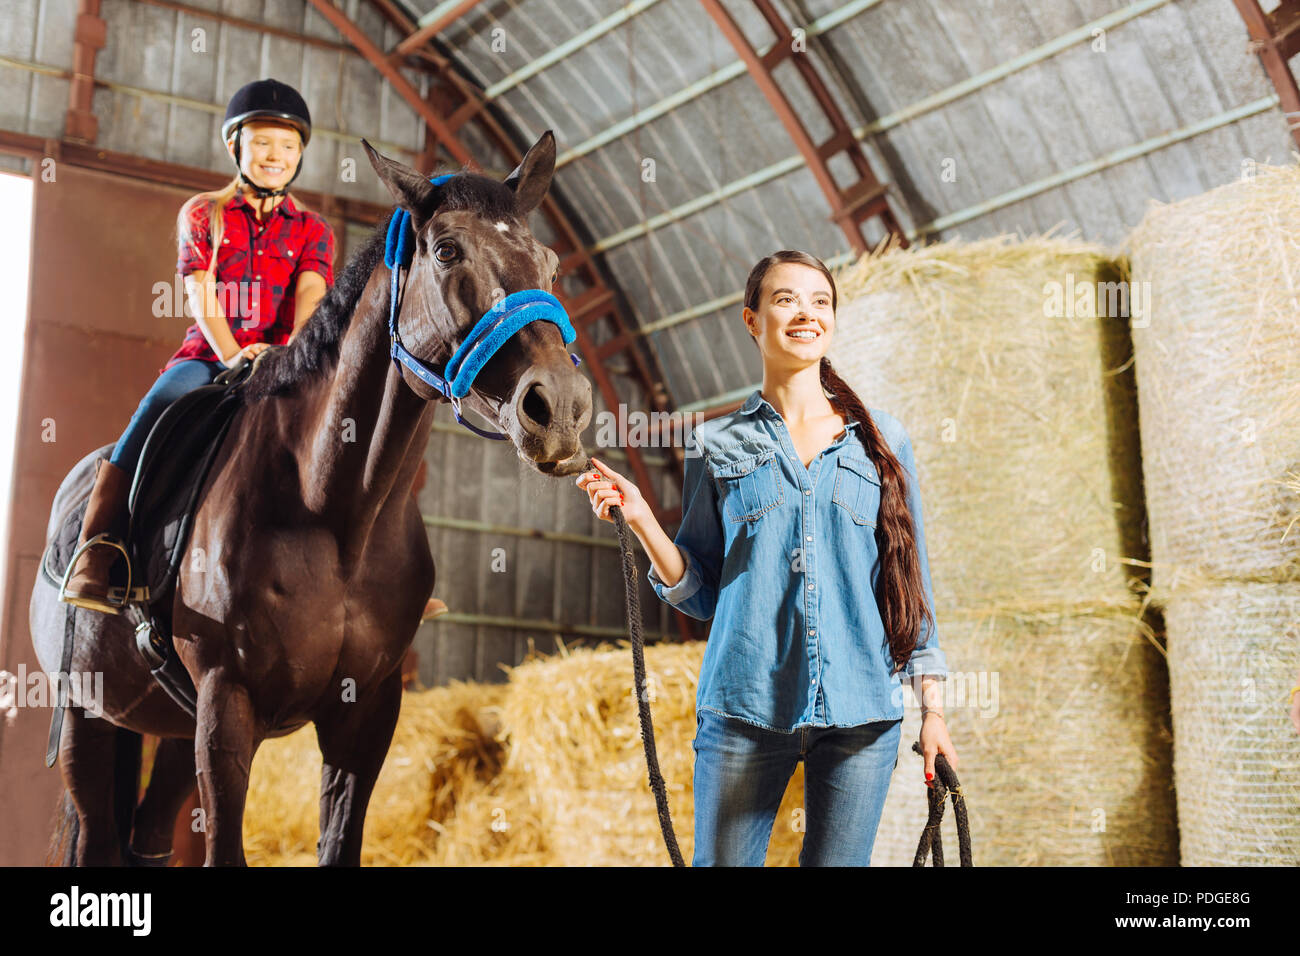 Dark-haired stylish riding teacher leading horse with cute girl - Stock Image